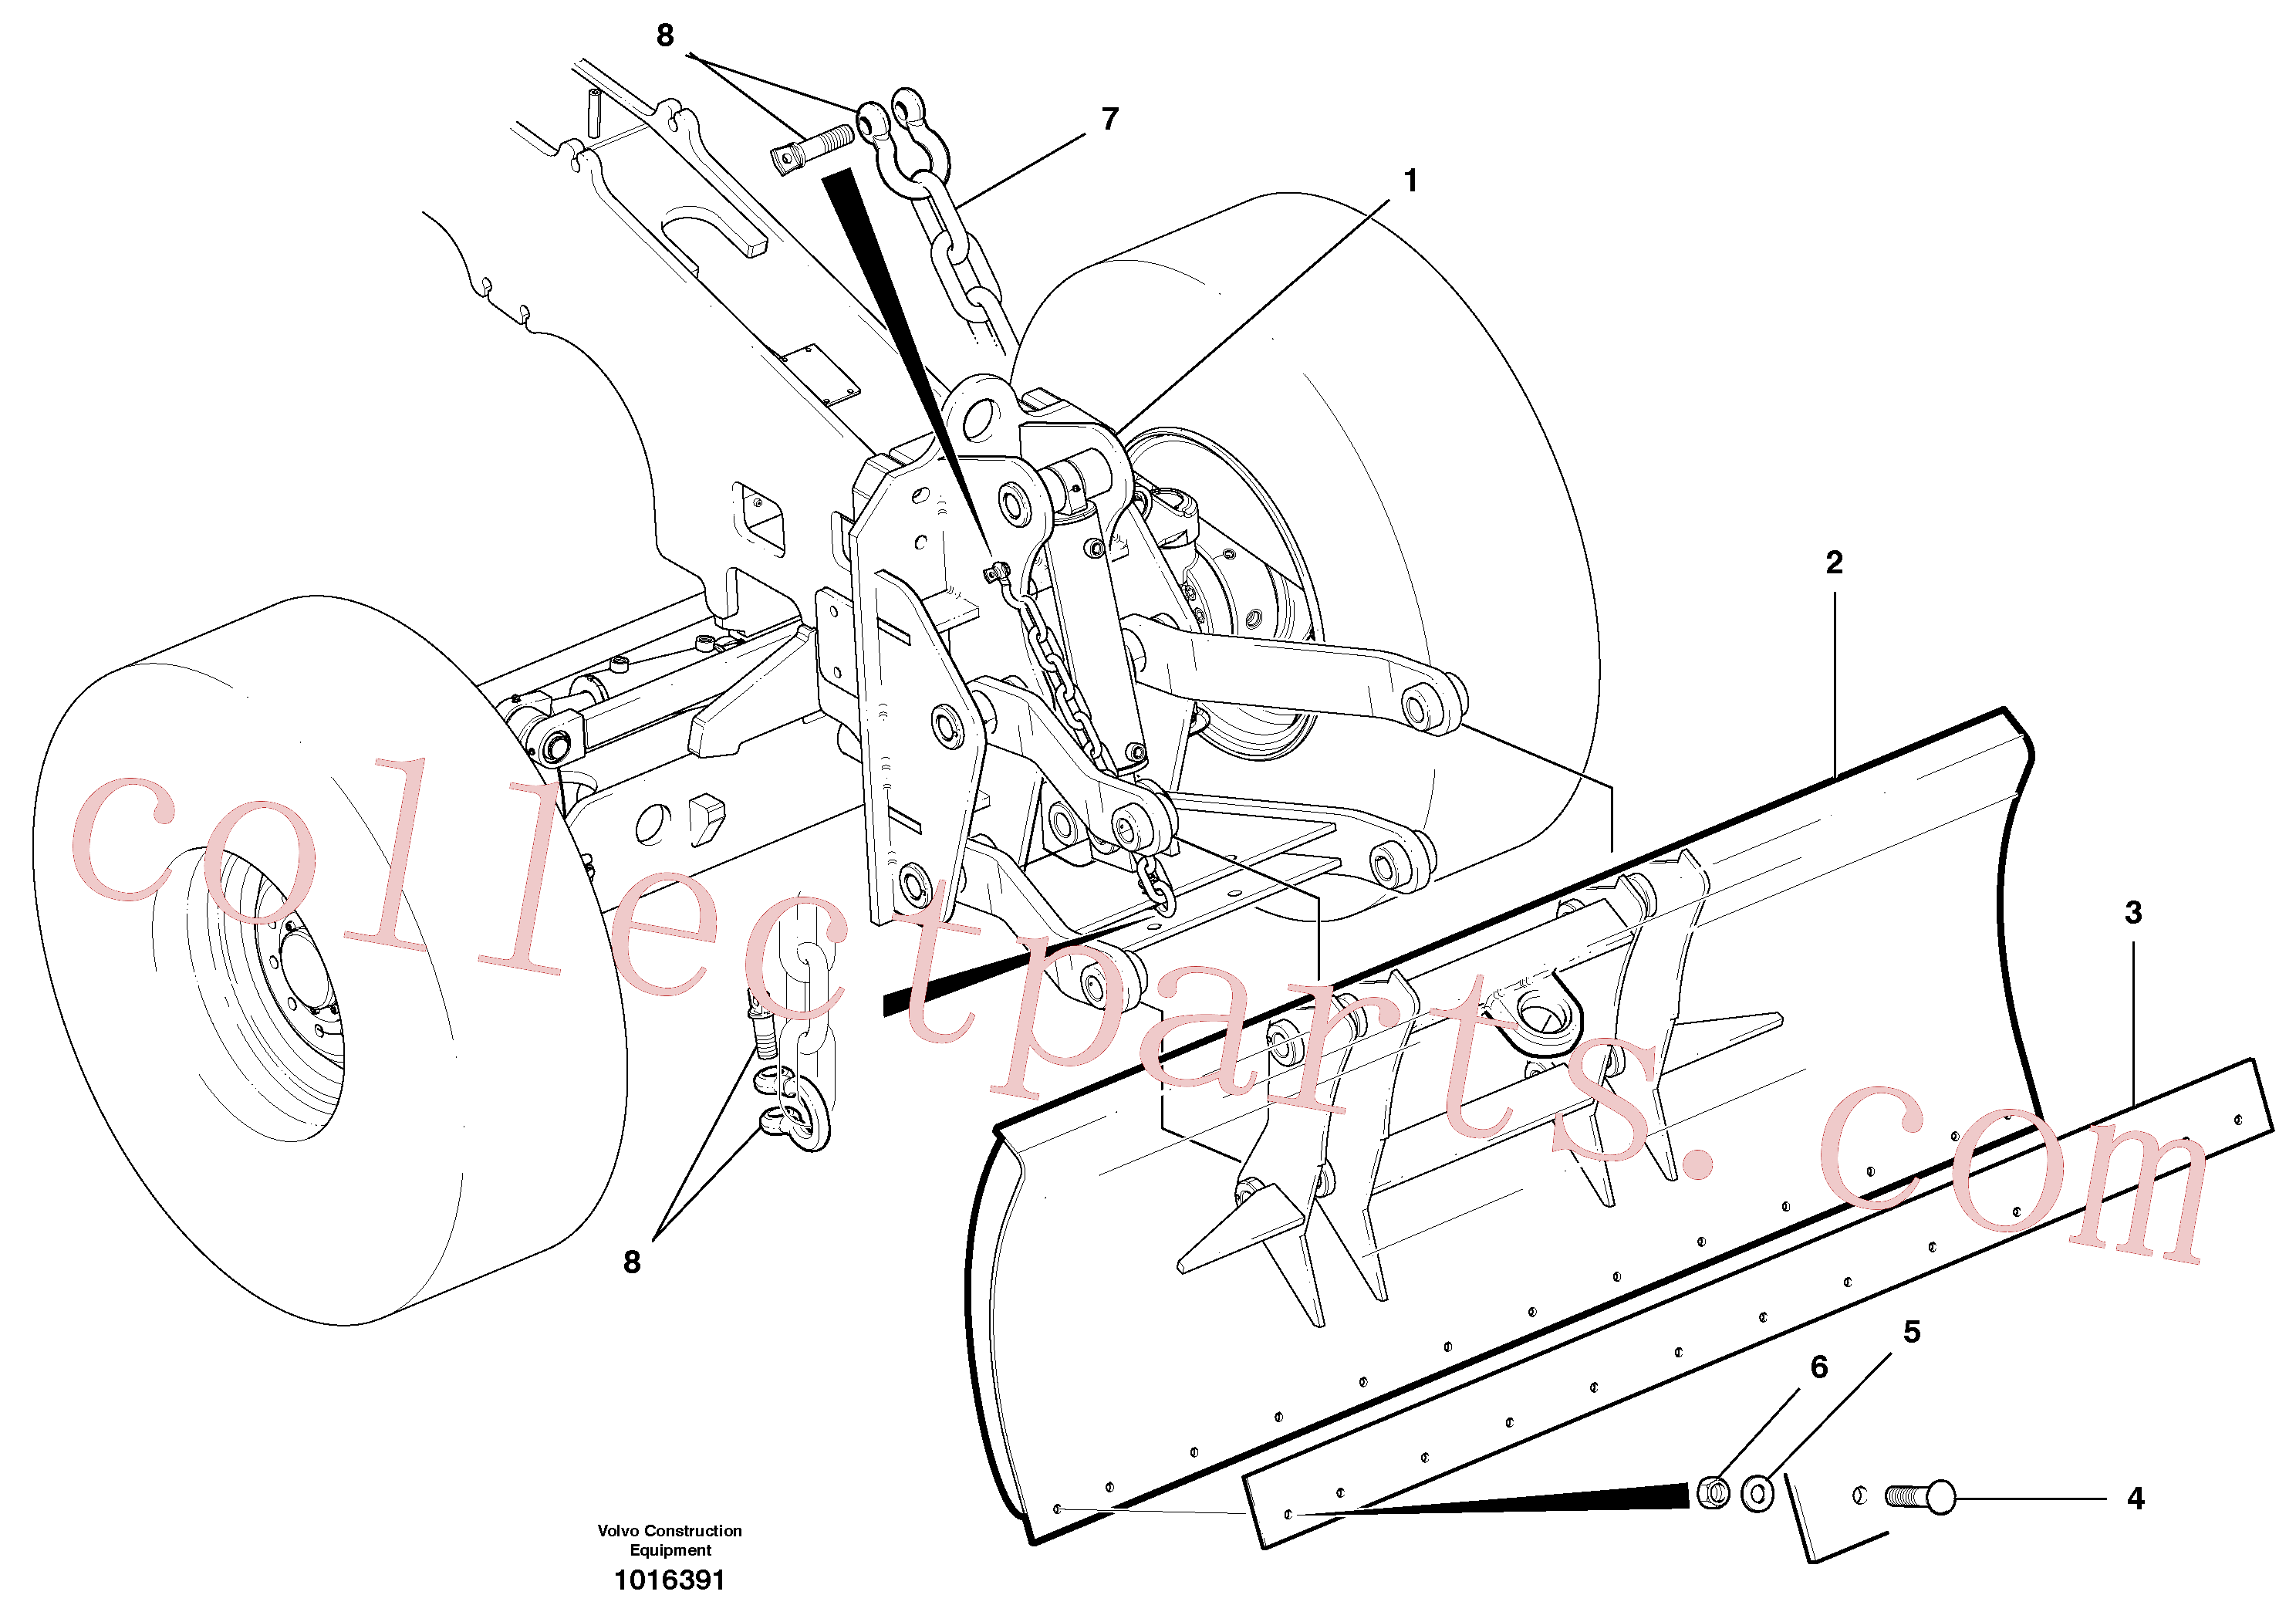 CH22129 for Volvo Dozer Blade Assembly(1016391 assembly)